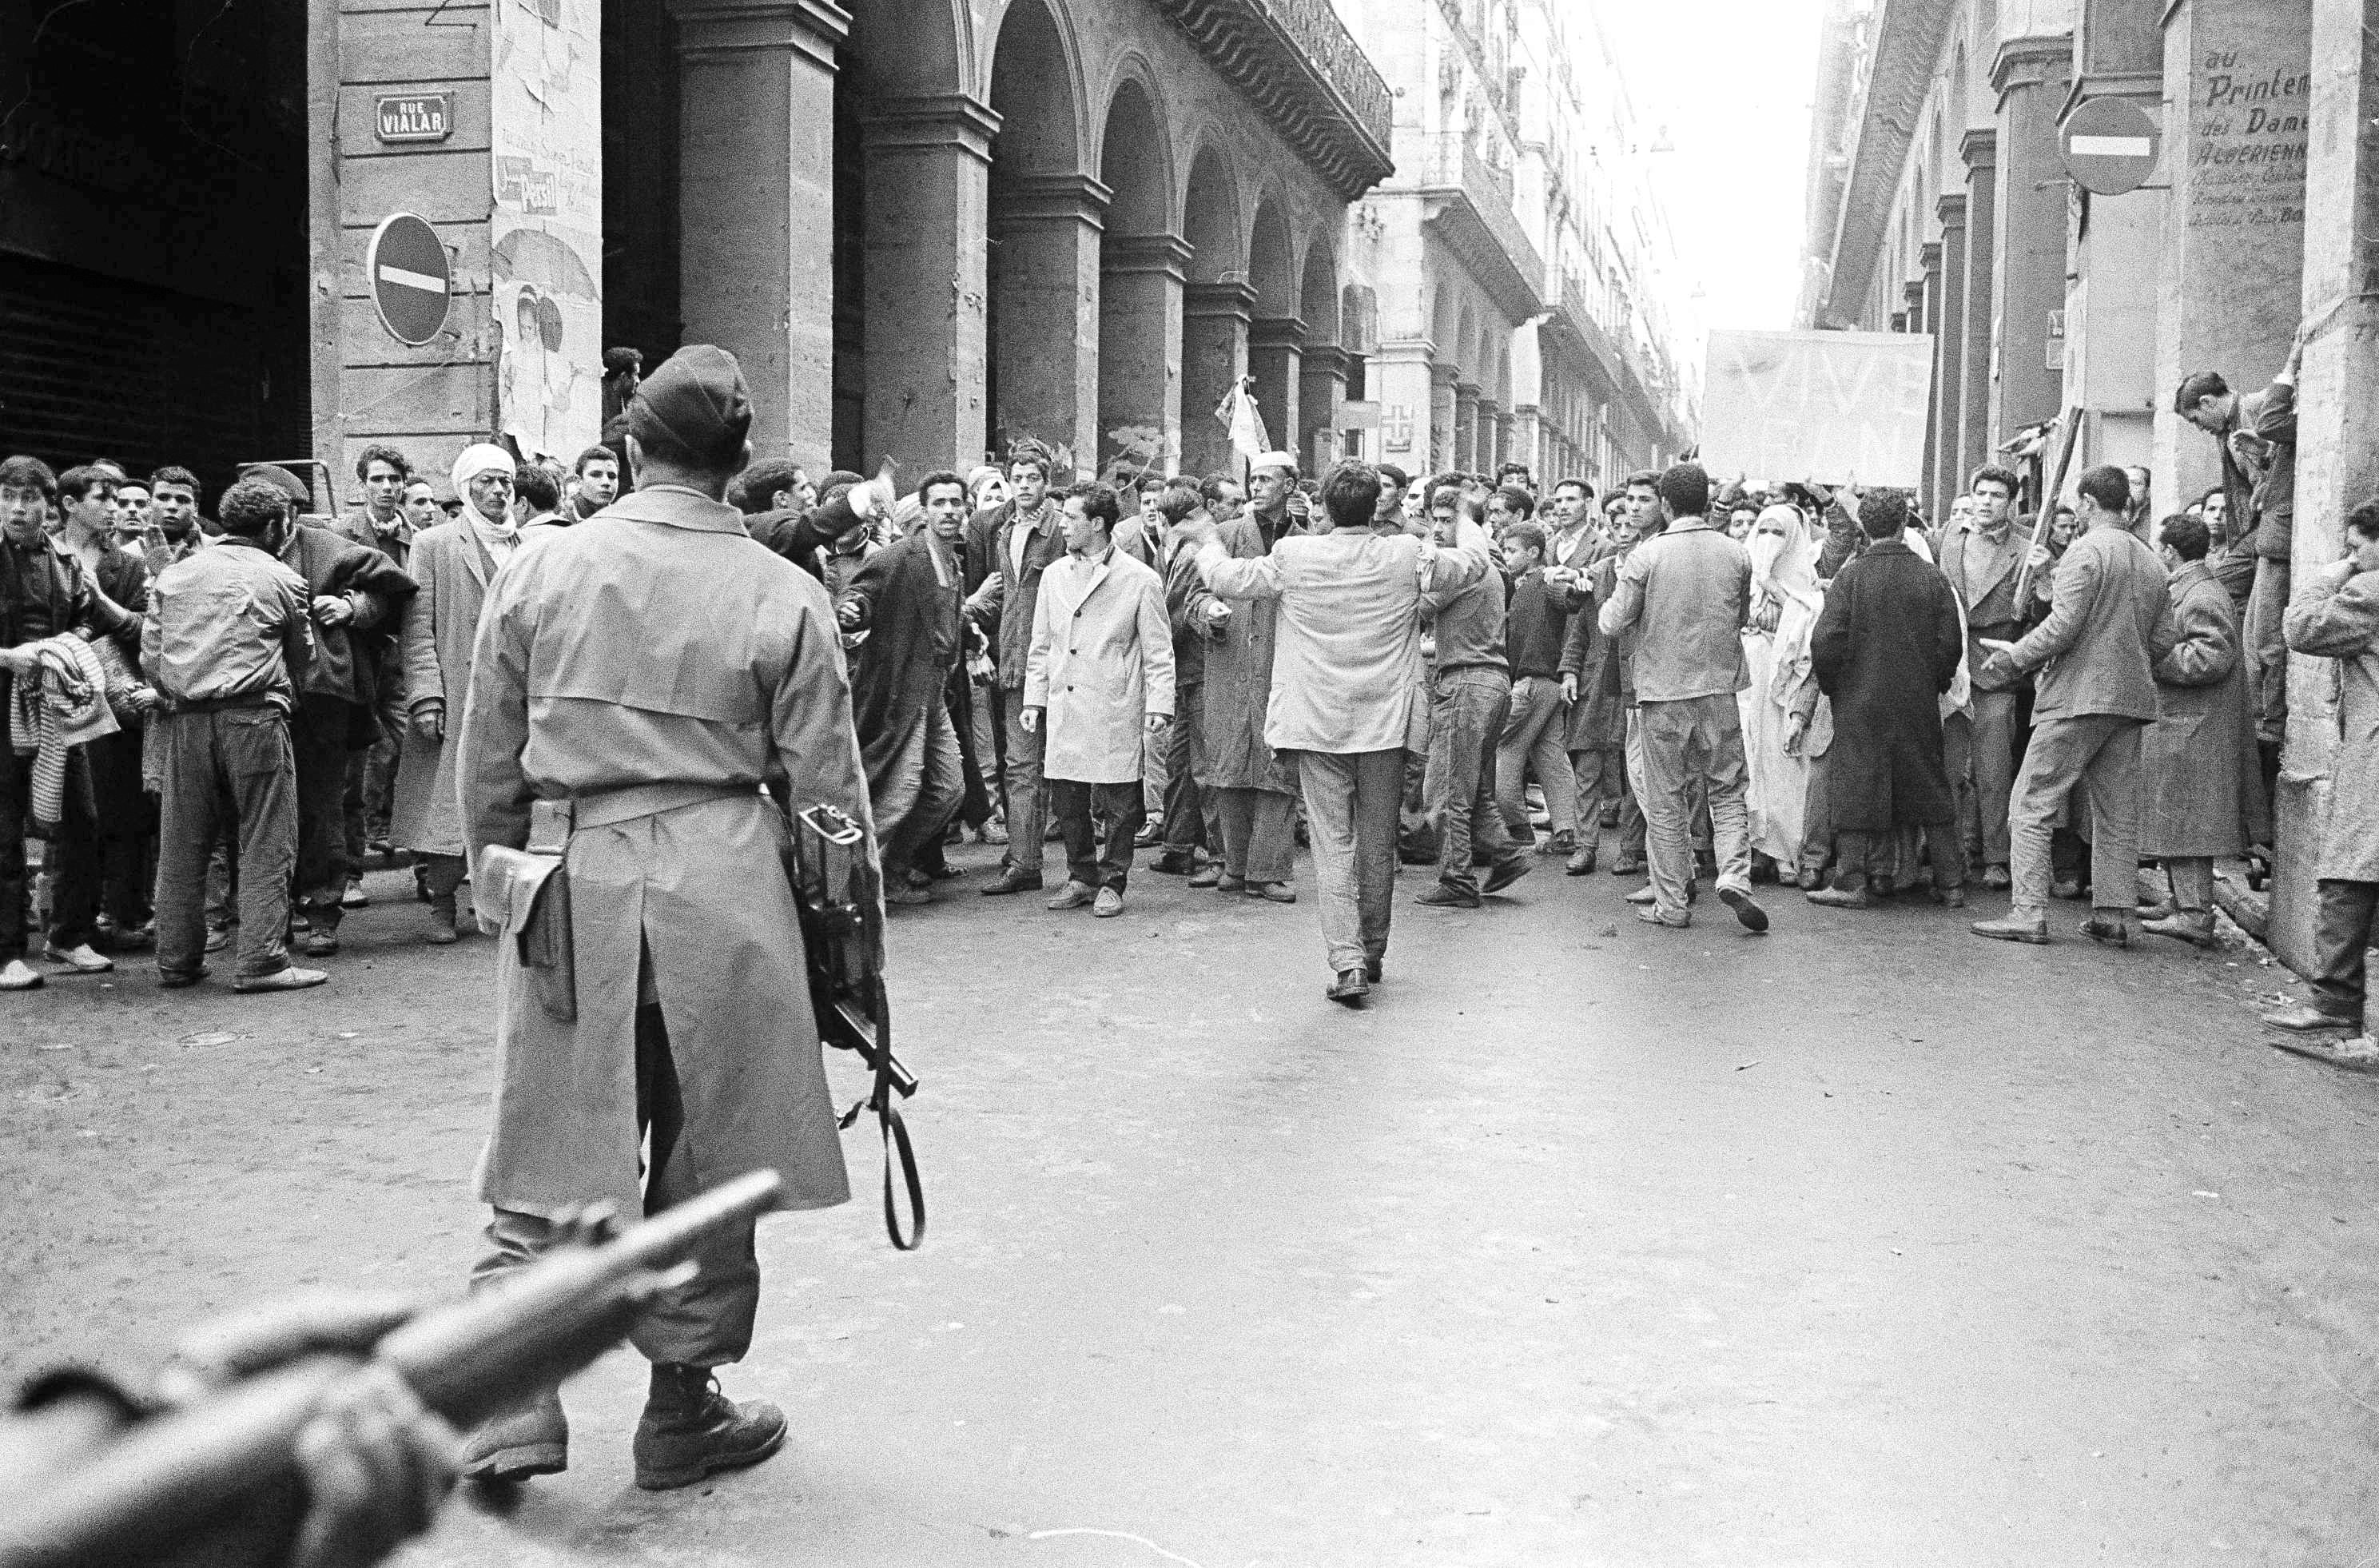 Armed French soldiers (foreground) face a shouting mob of Algerians at an entrance to the Casbah native quarter in Algiers, Dec. 14, 1960. (AP Photo)